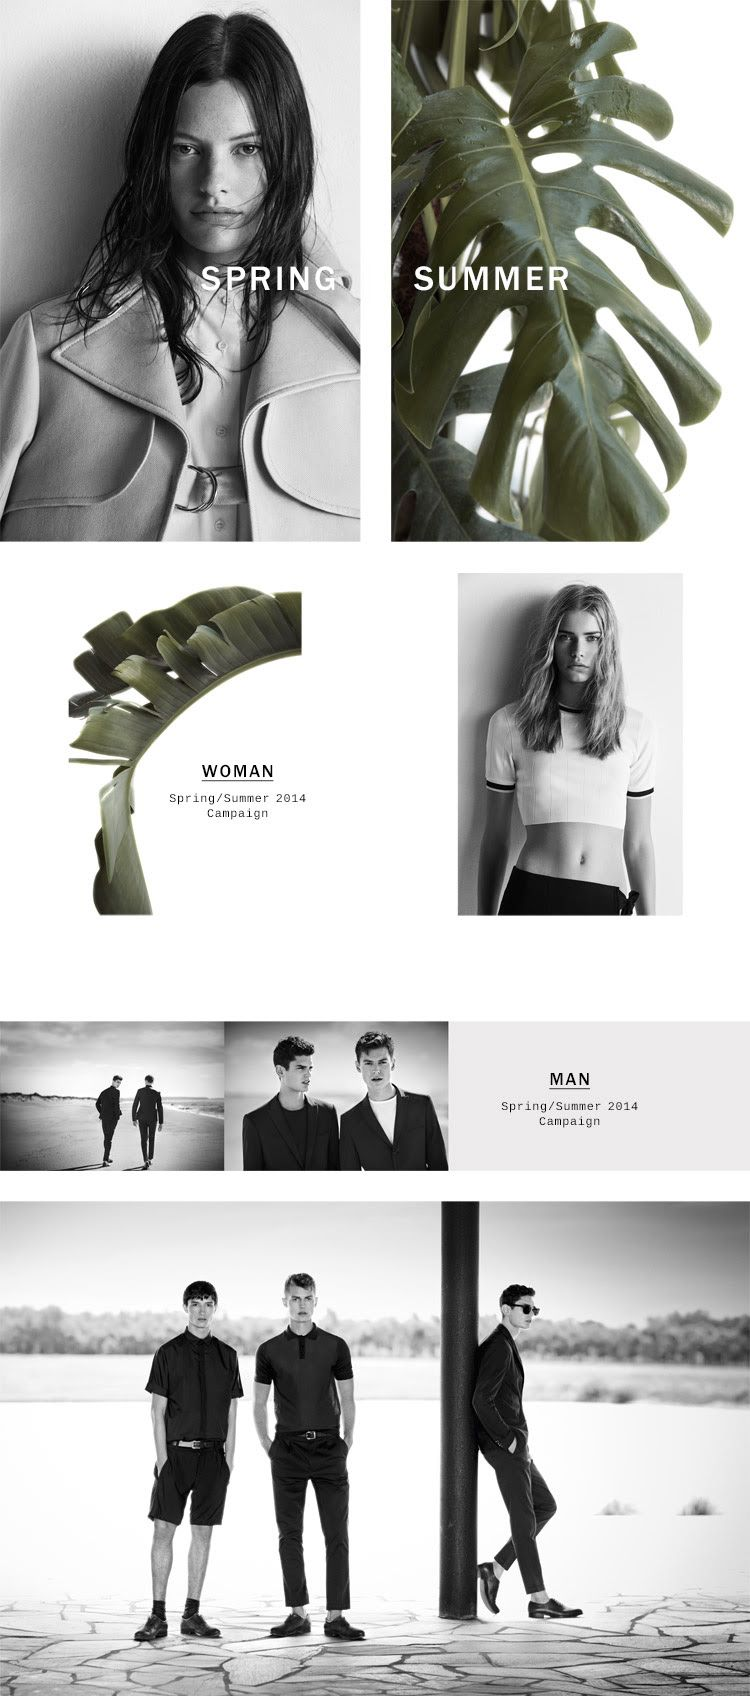 Zara poster design - Zara S S 2014 Campaign Graphics Design Photography Branding